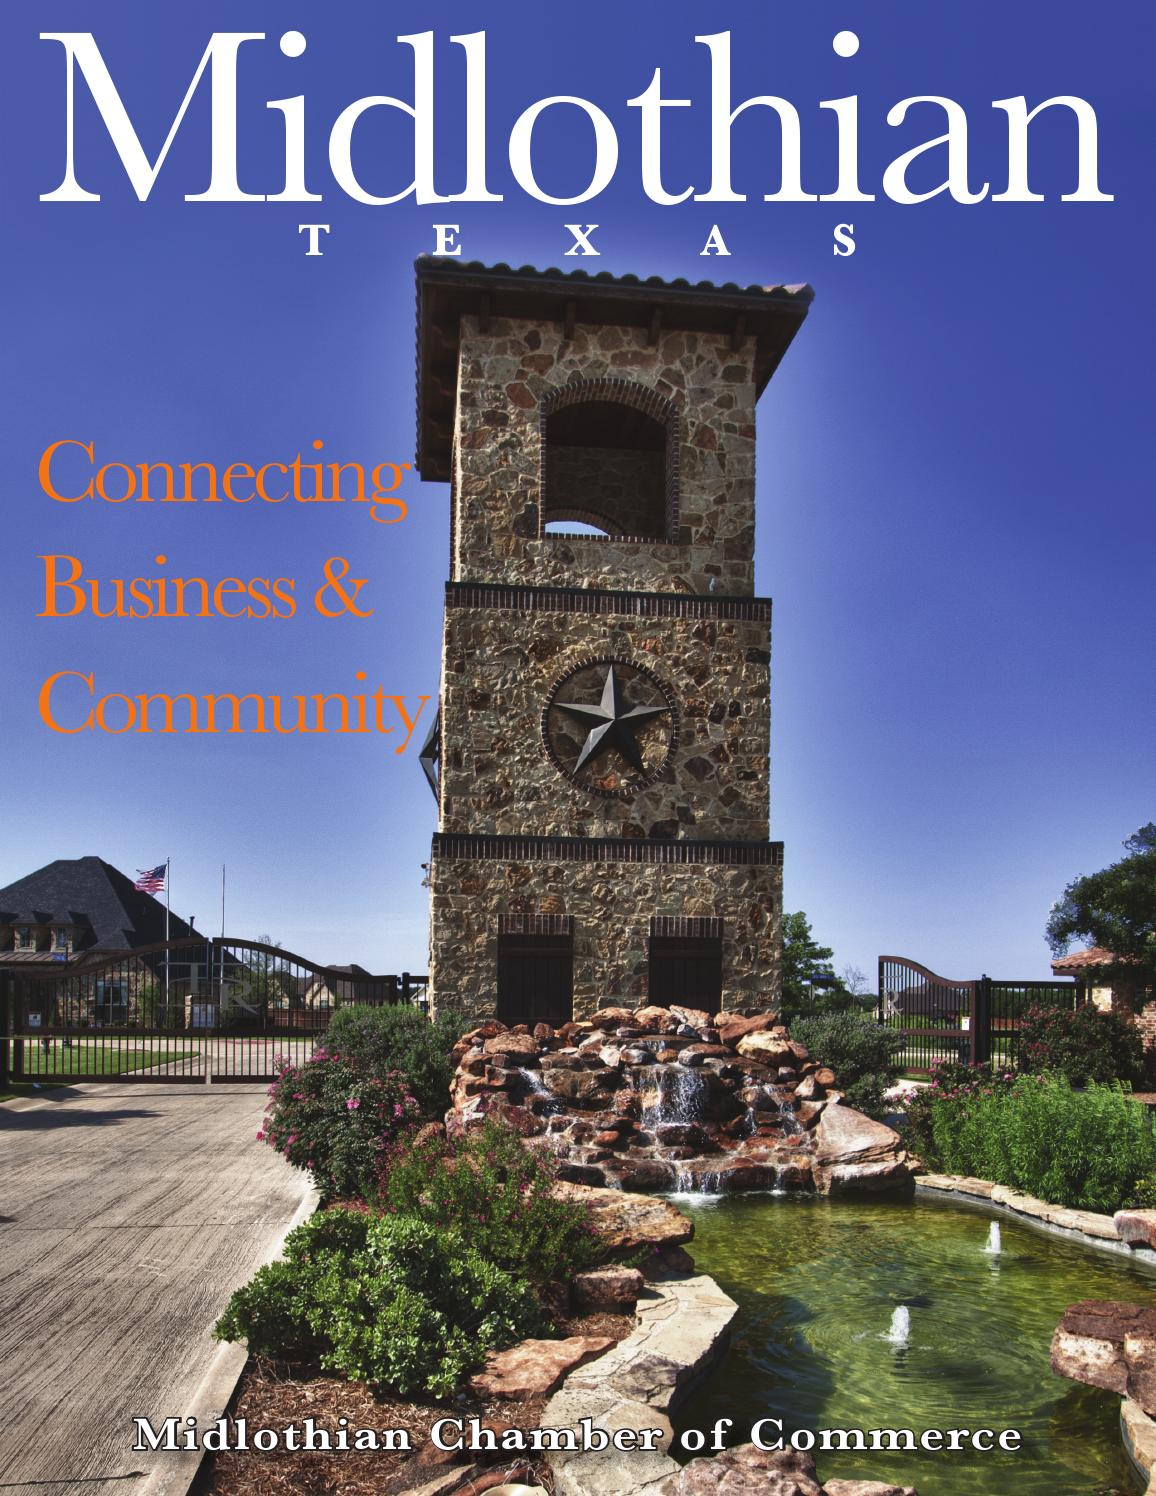 Midlothian Community Profile and Chamber Directory by